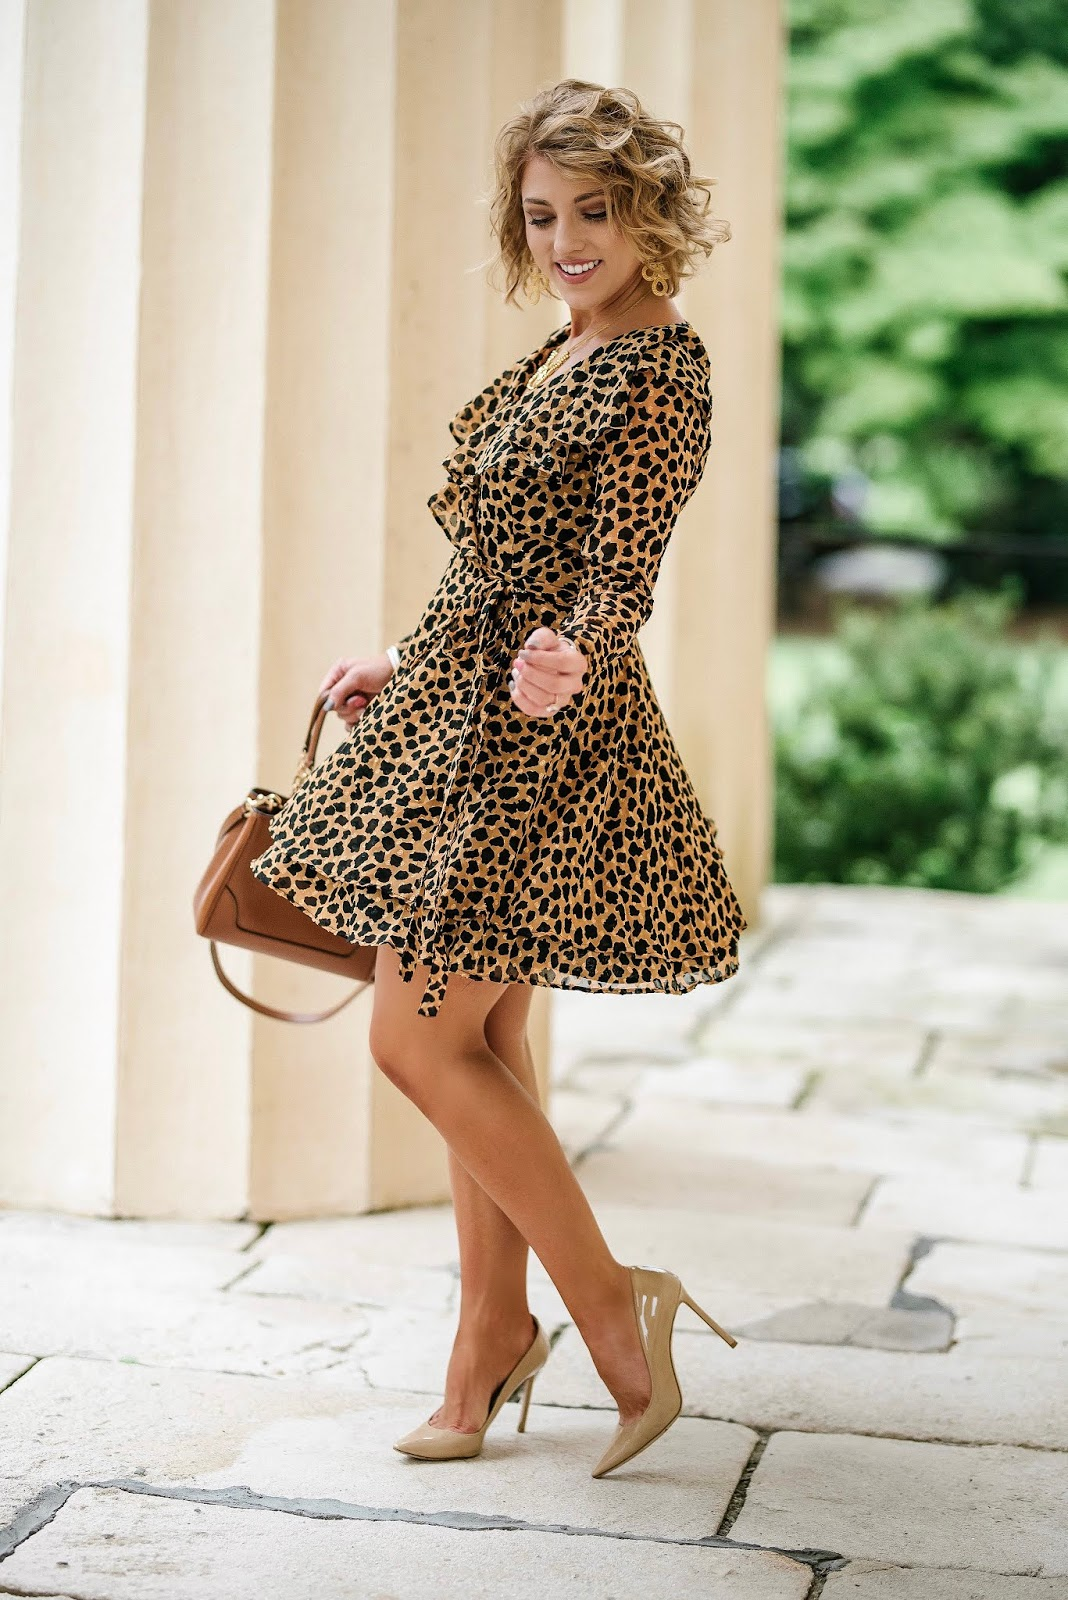 A Dress You'll Want To Twirl In: Free People Leopard Wrap Dress - Something Delightful Blog @racheltimmerman